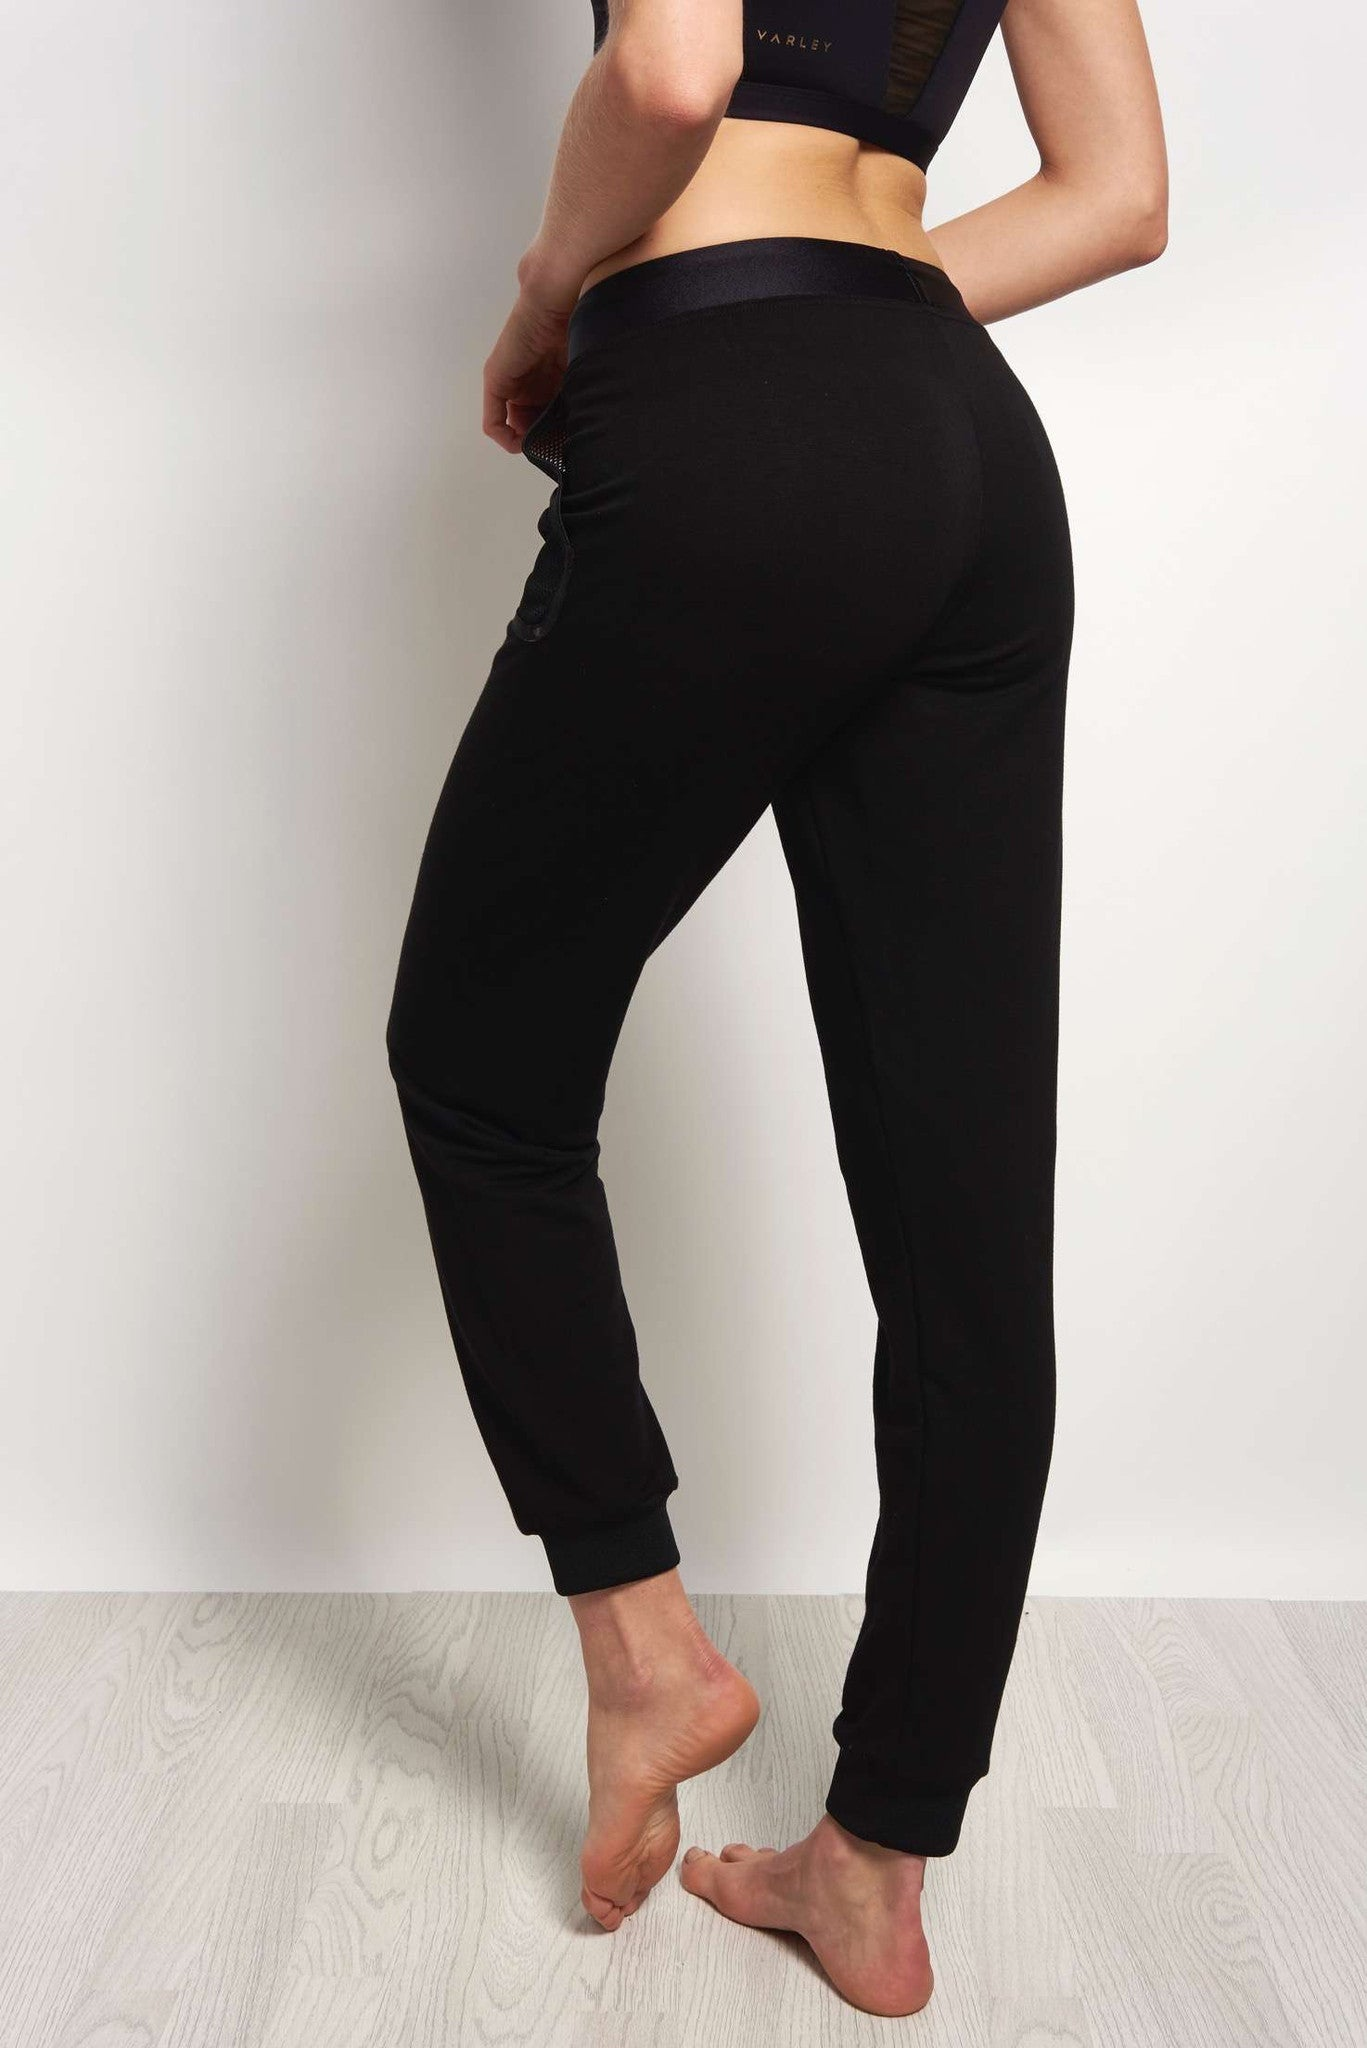 MONREAL Cosy Sweatpants - Black image 2 - The Sports Edit